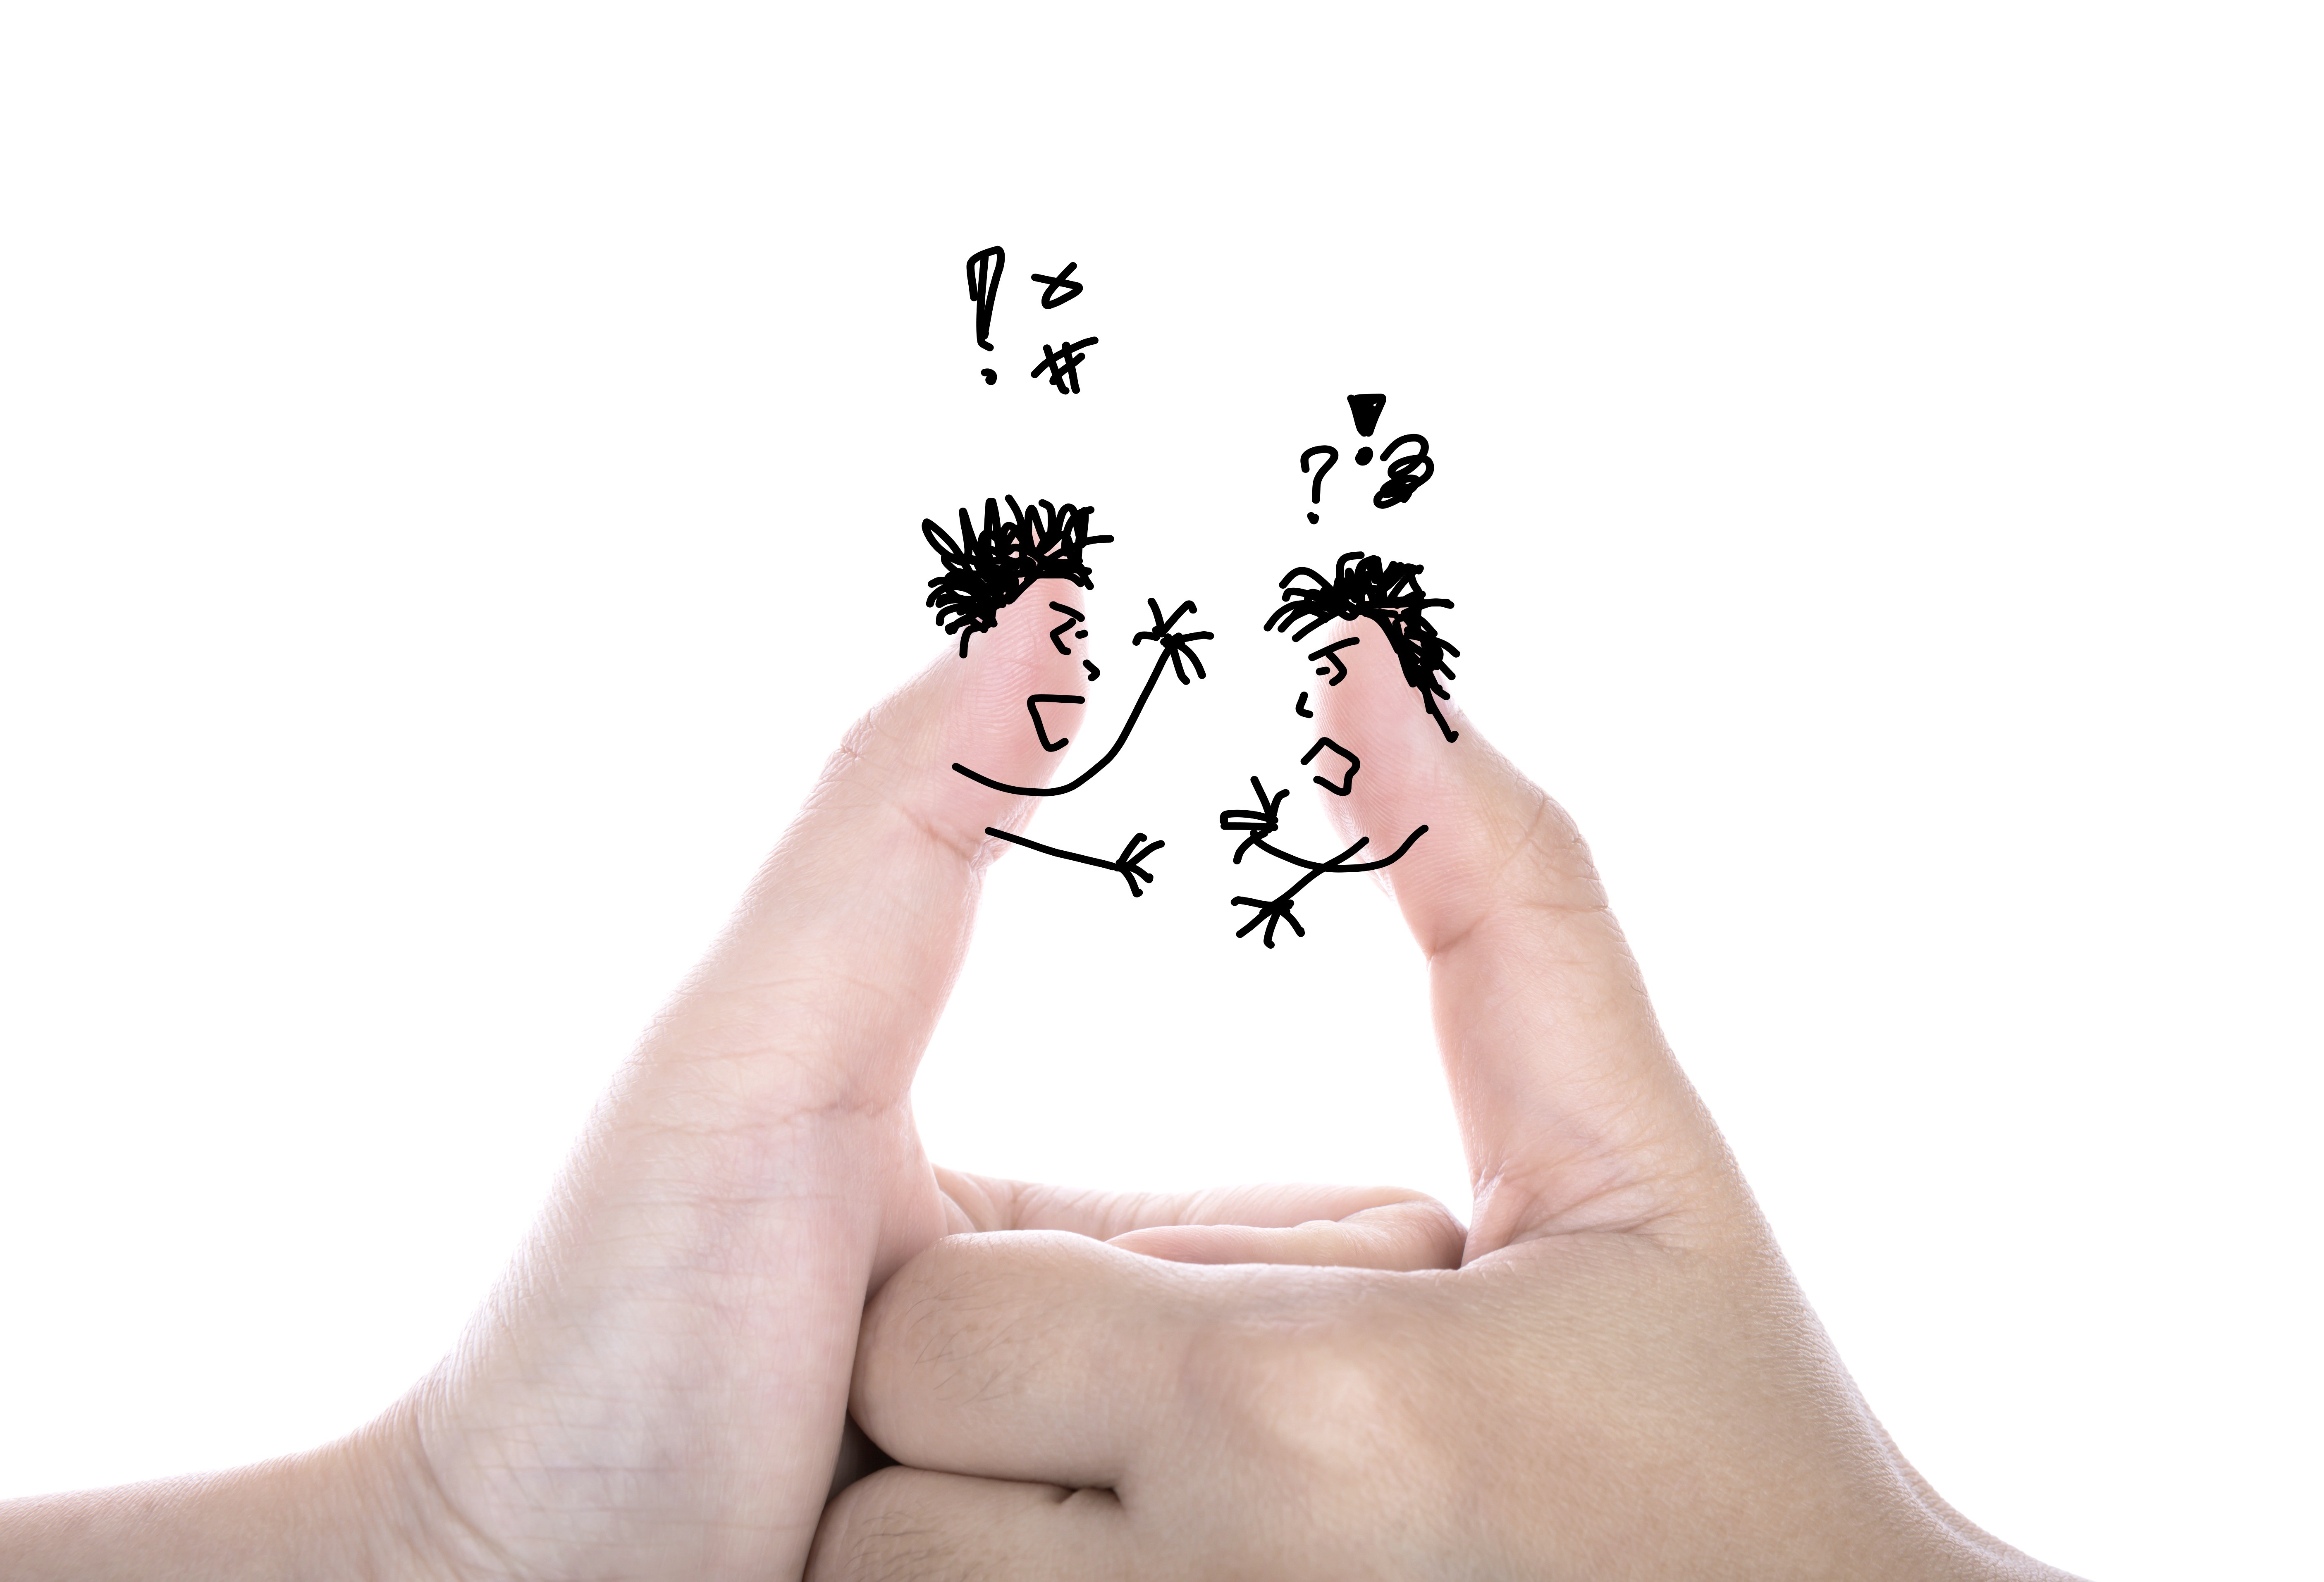 Graphic illustration of two thumbs arguing with one another during a thumb war style handshake